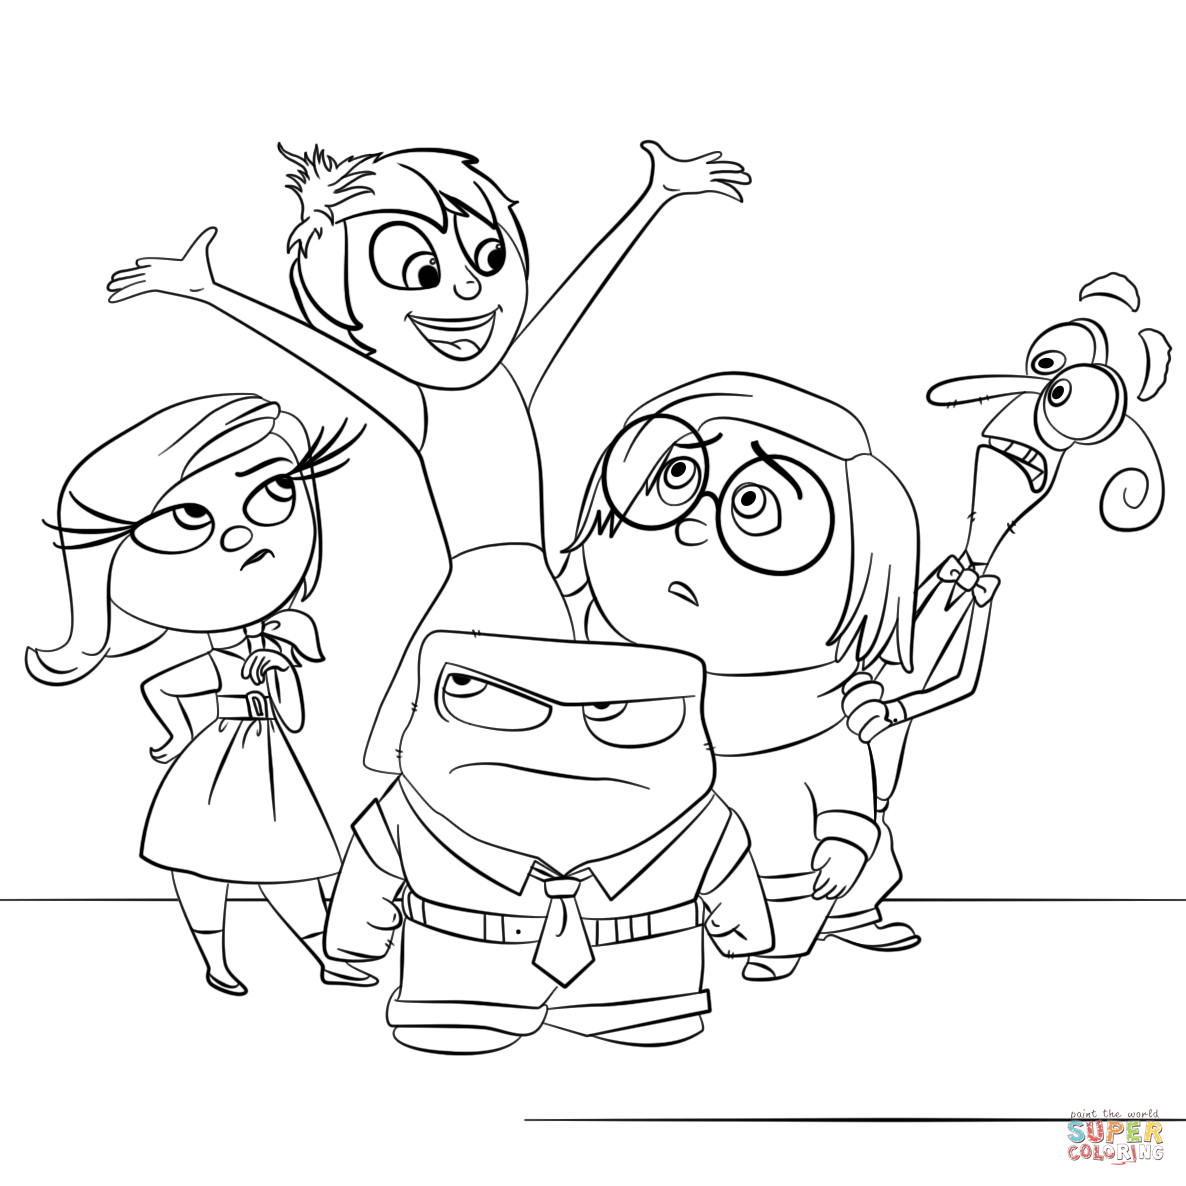 1186x1186 Inside Out All Characters Super Coloring Mental Illness